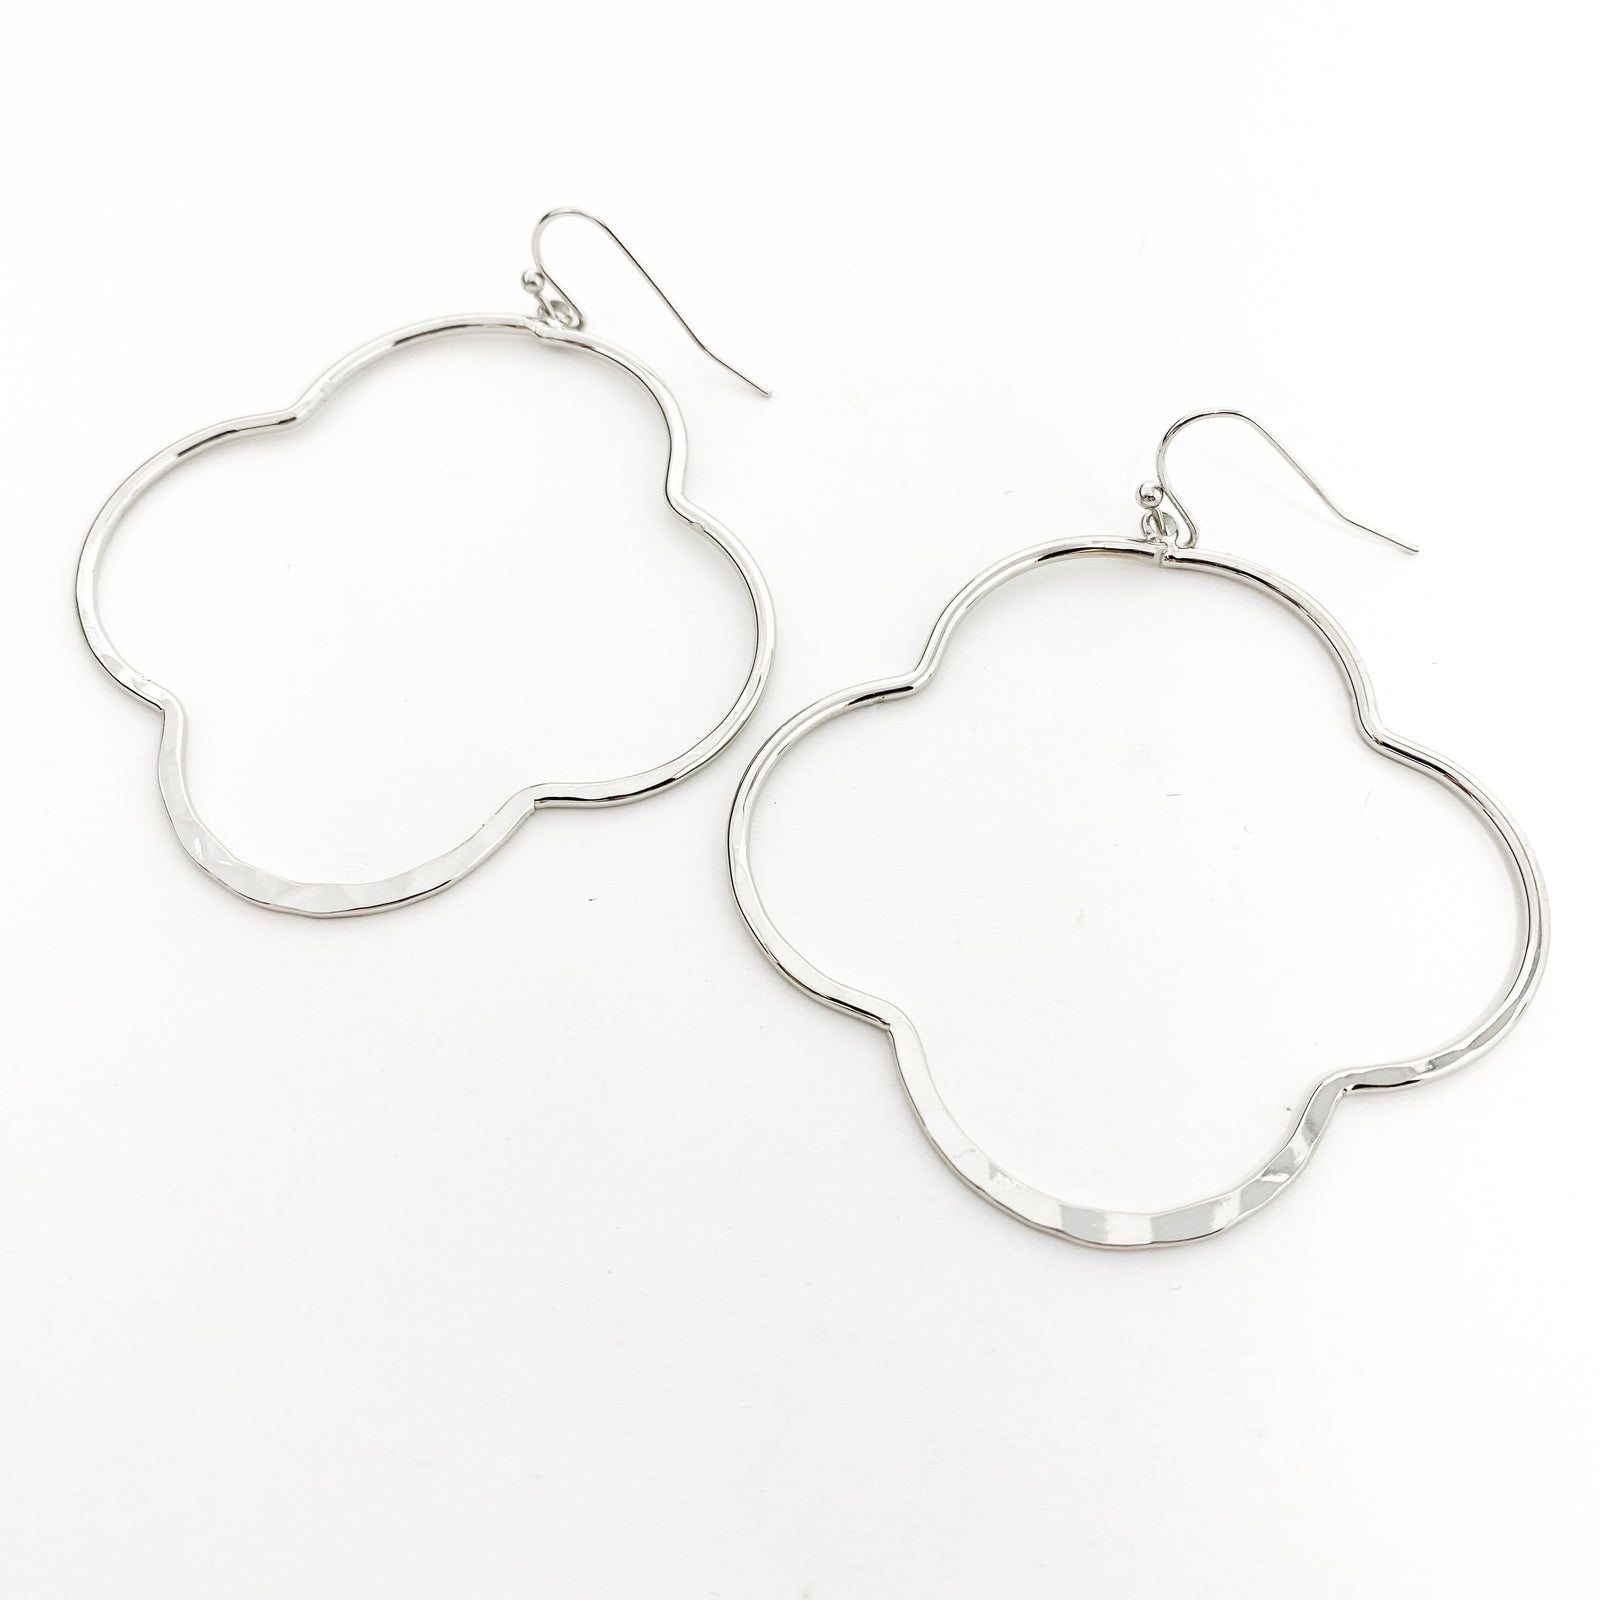 HAMMERED VAN CLEEF EARRINGS | RHODIUM SILVER | SIZE OPTIONS